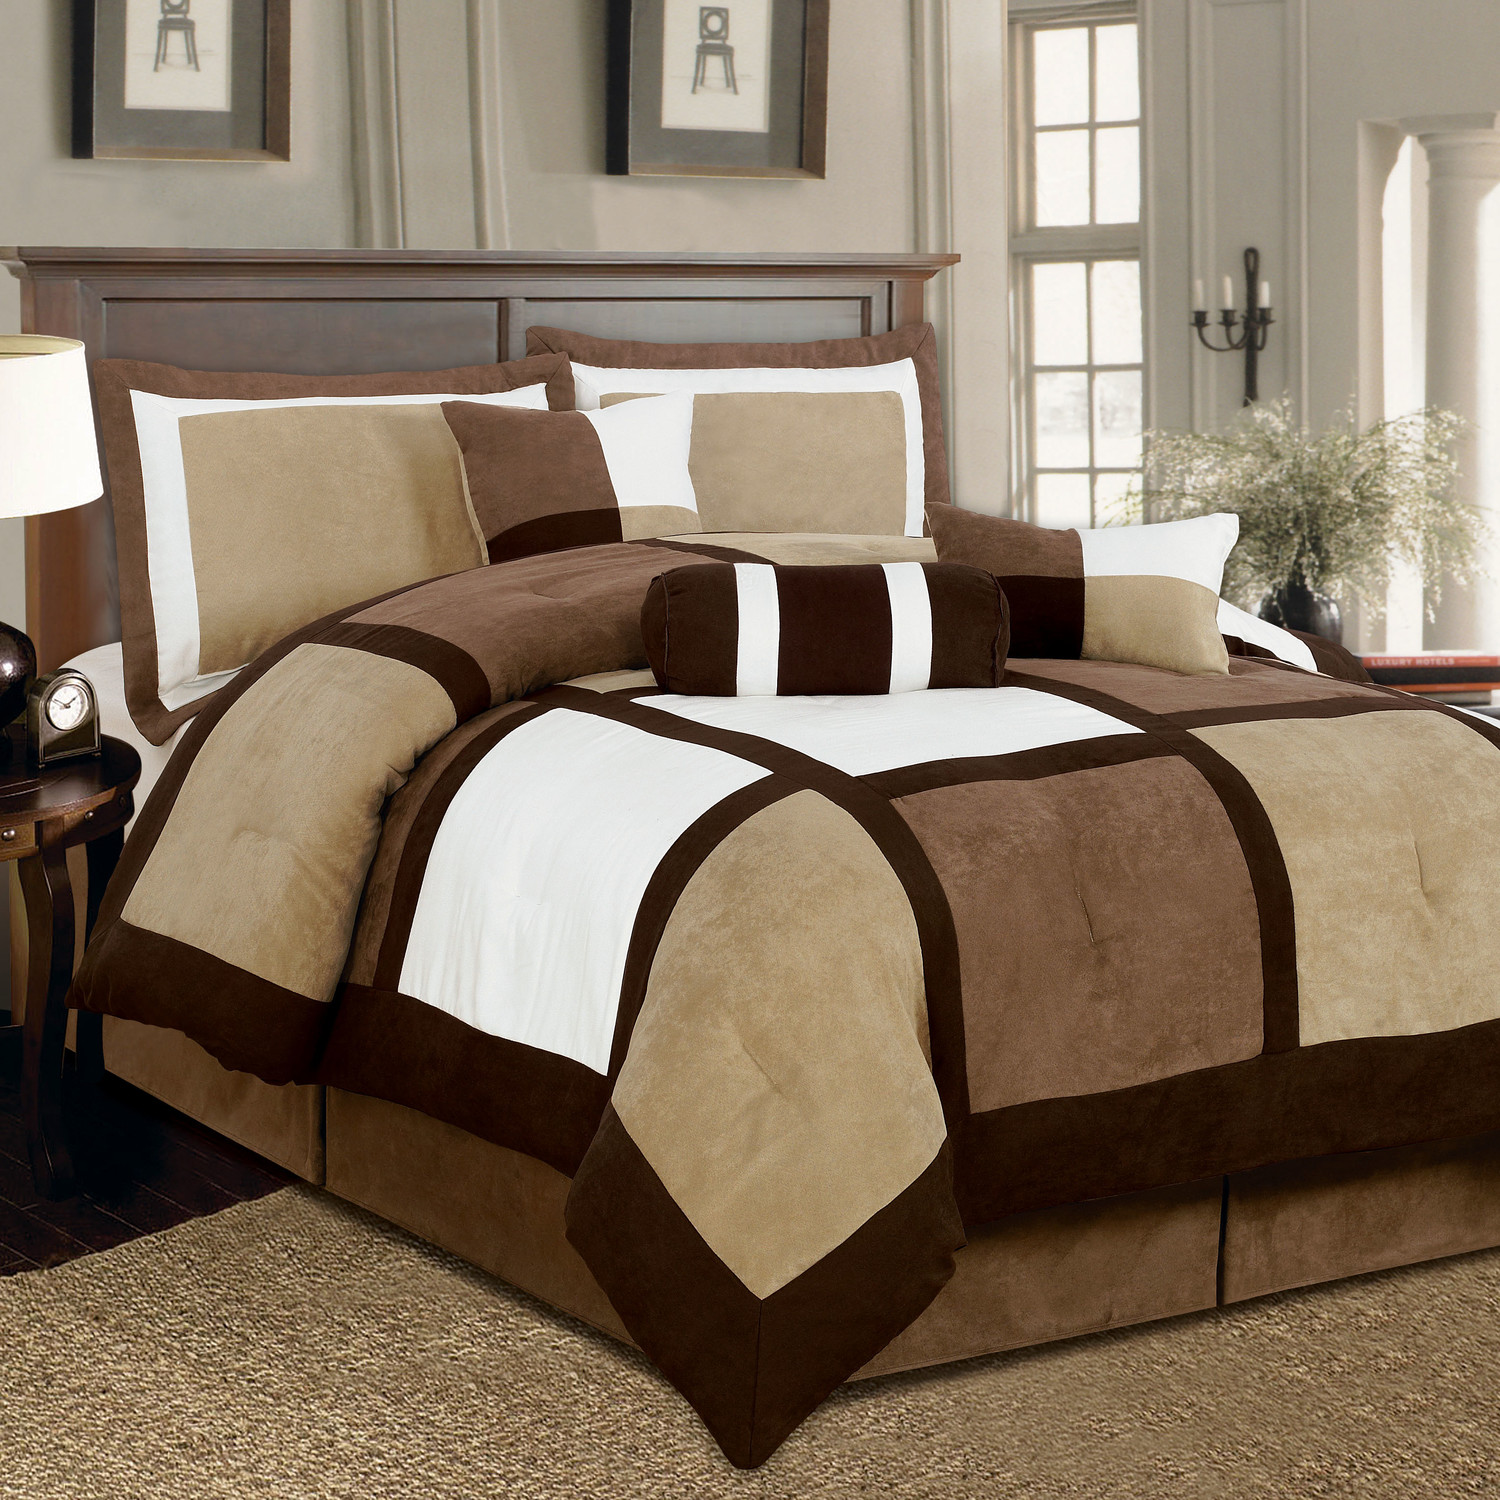 Excellent california king bedding for bedroom design with california king bed frame